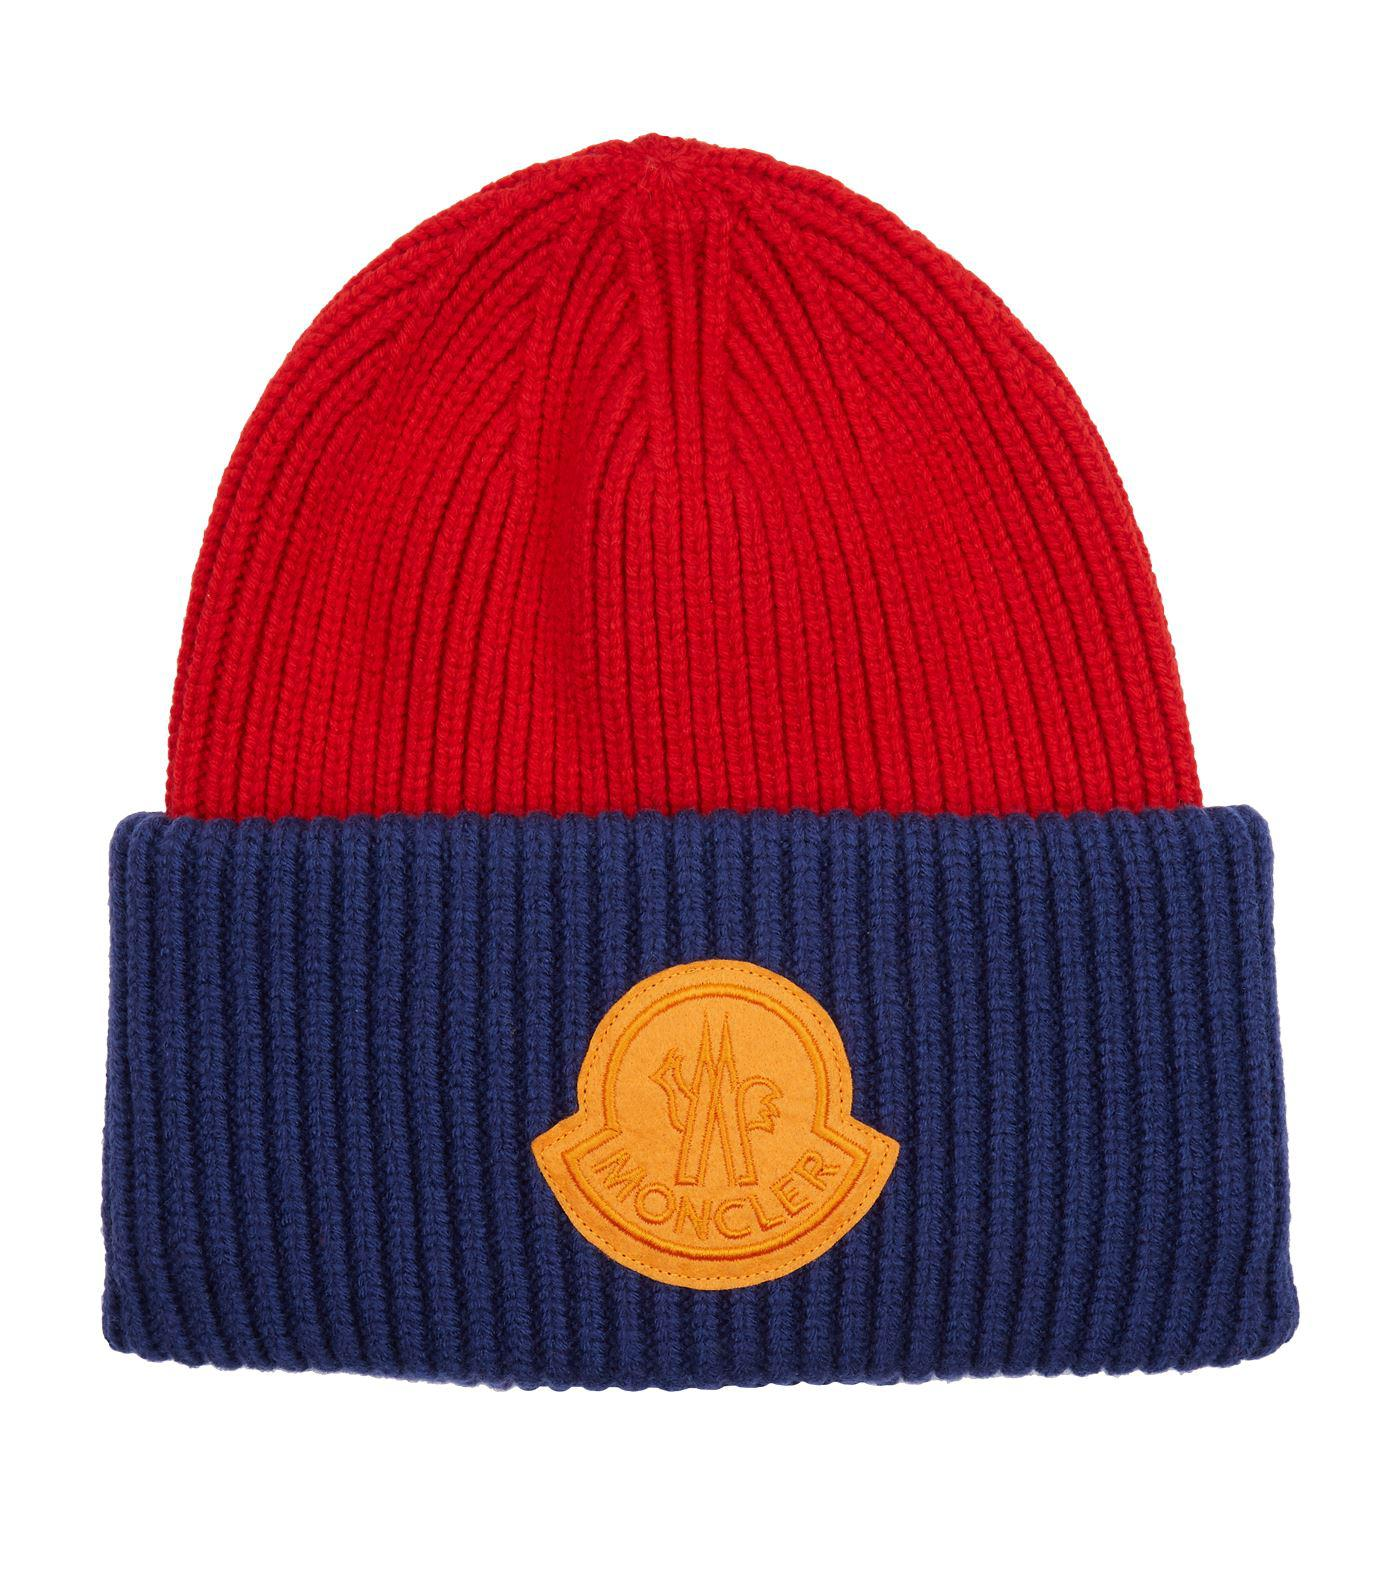 1df0def0f Moncler Knitted Cap in Blue for Men - Lyst